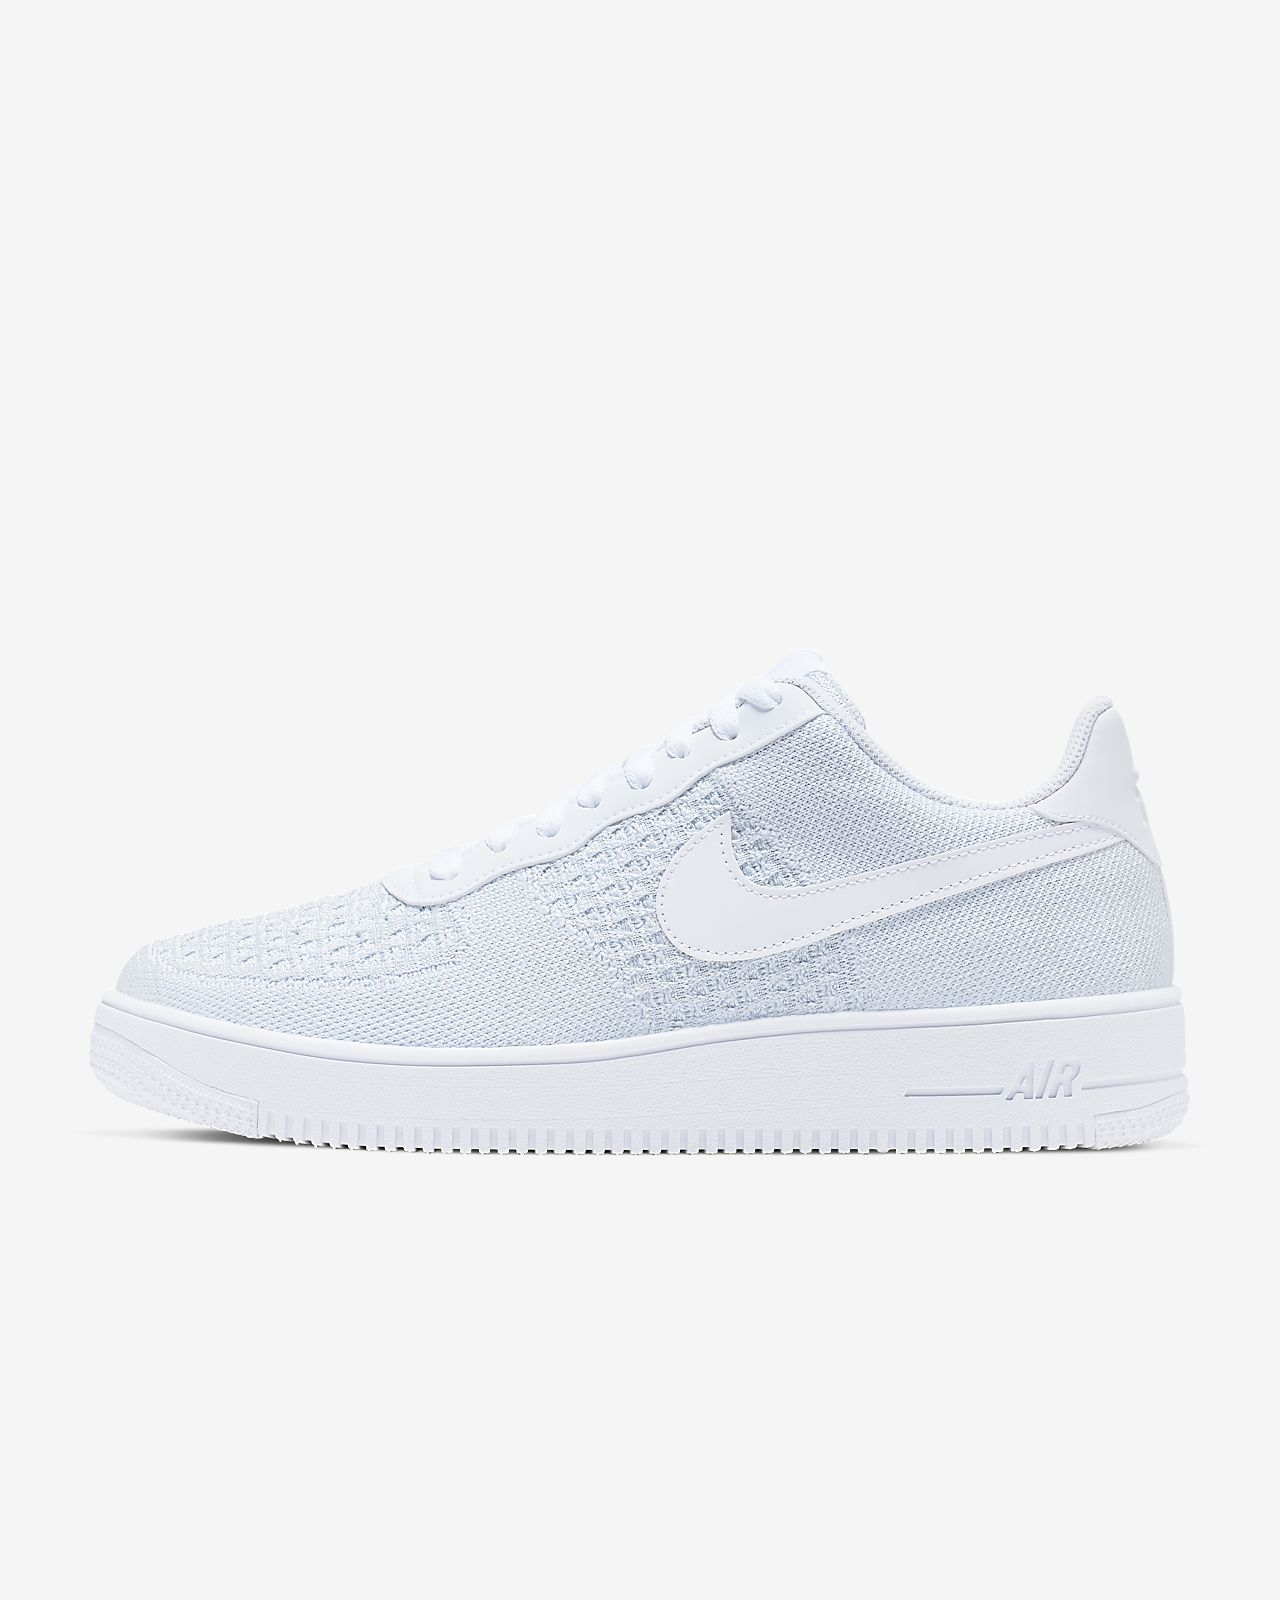 promo code 6ed81 14596 Low Resolution Nike Air Force 1 Flyknit 2.0 Men s Shoe Nike Air Force 1  Flyknit 2.0 Men s Shoe